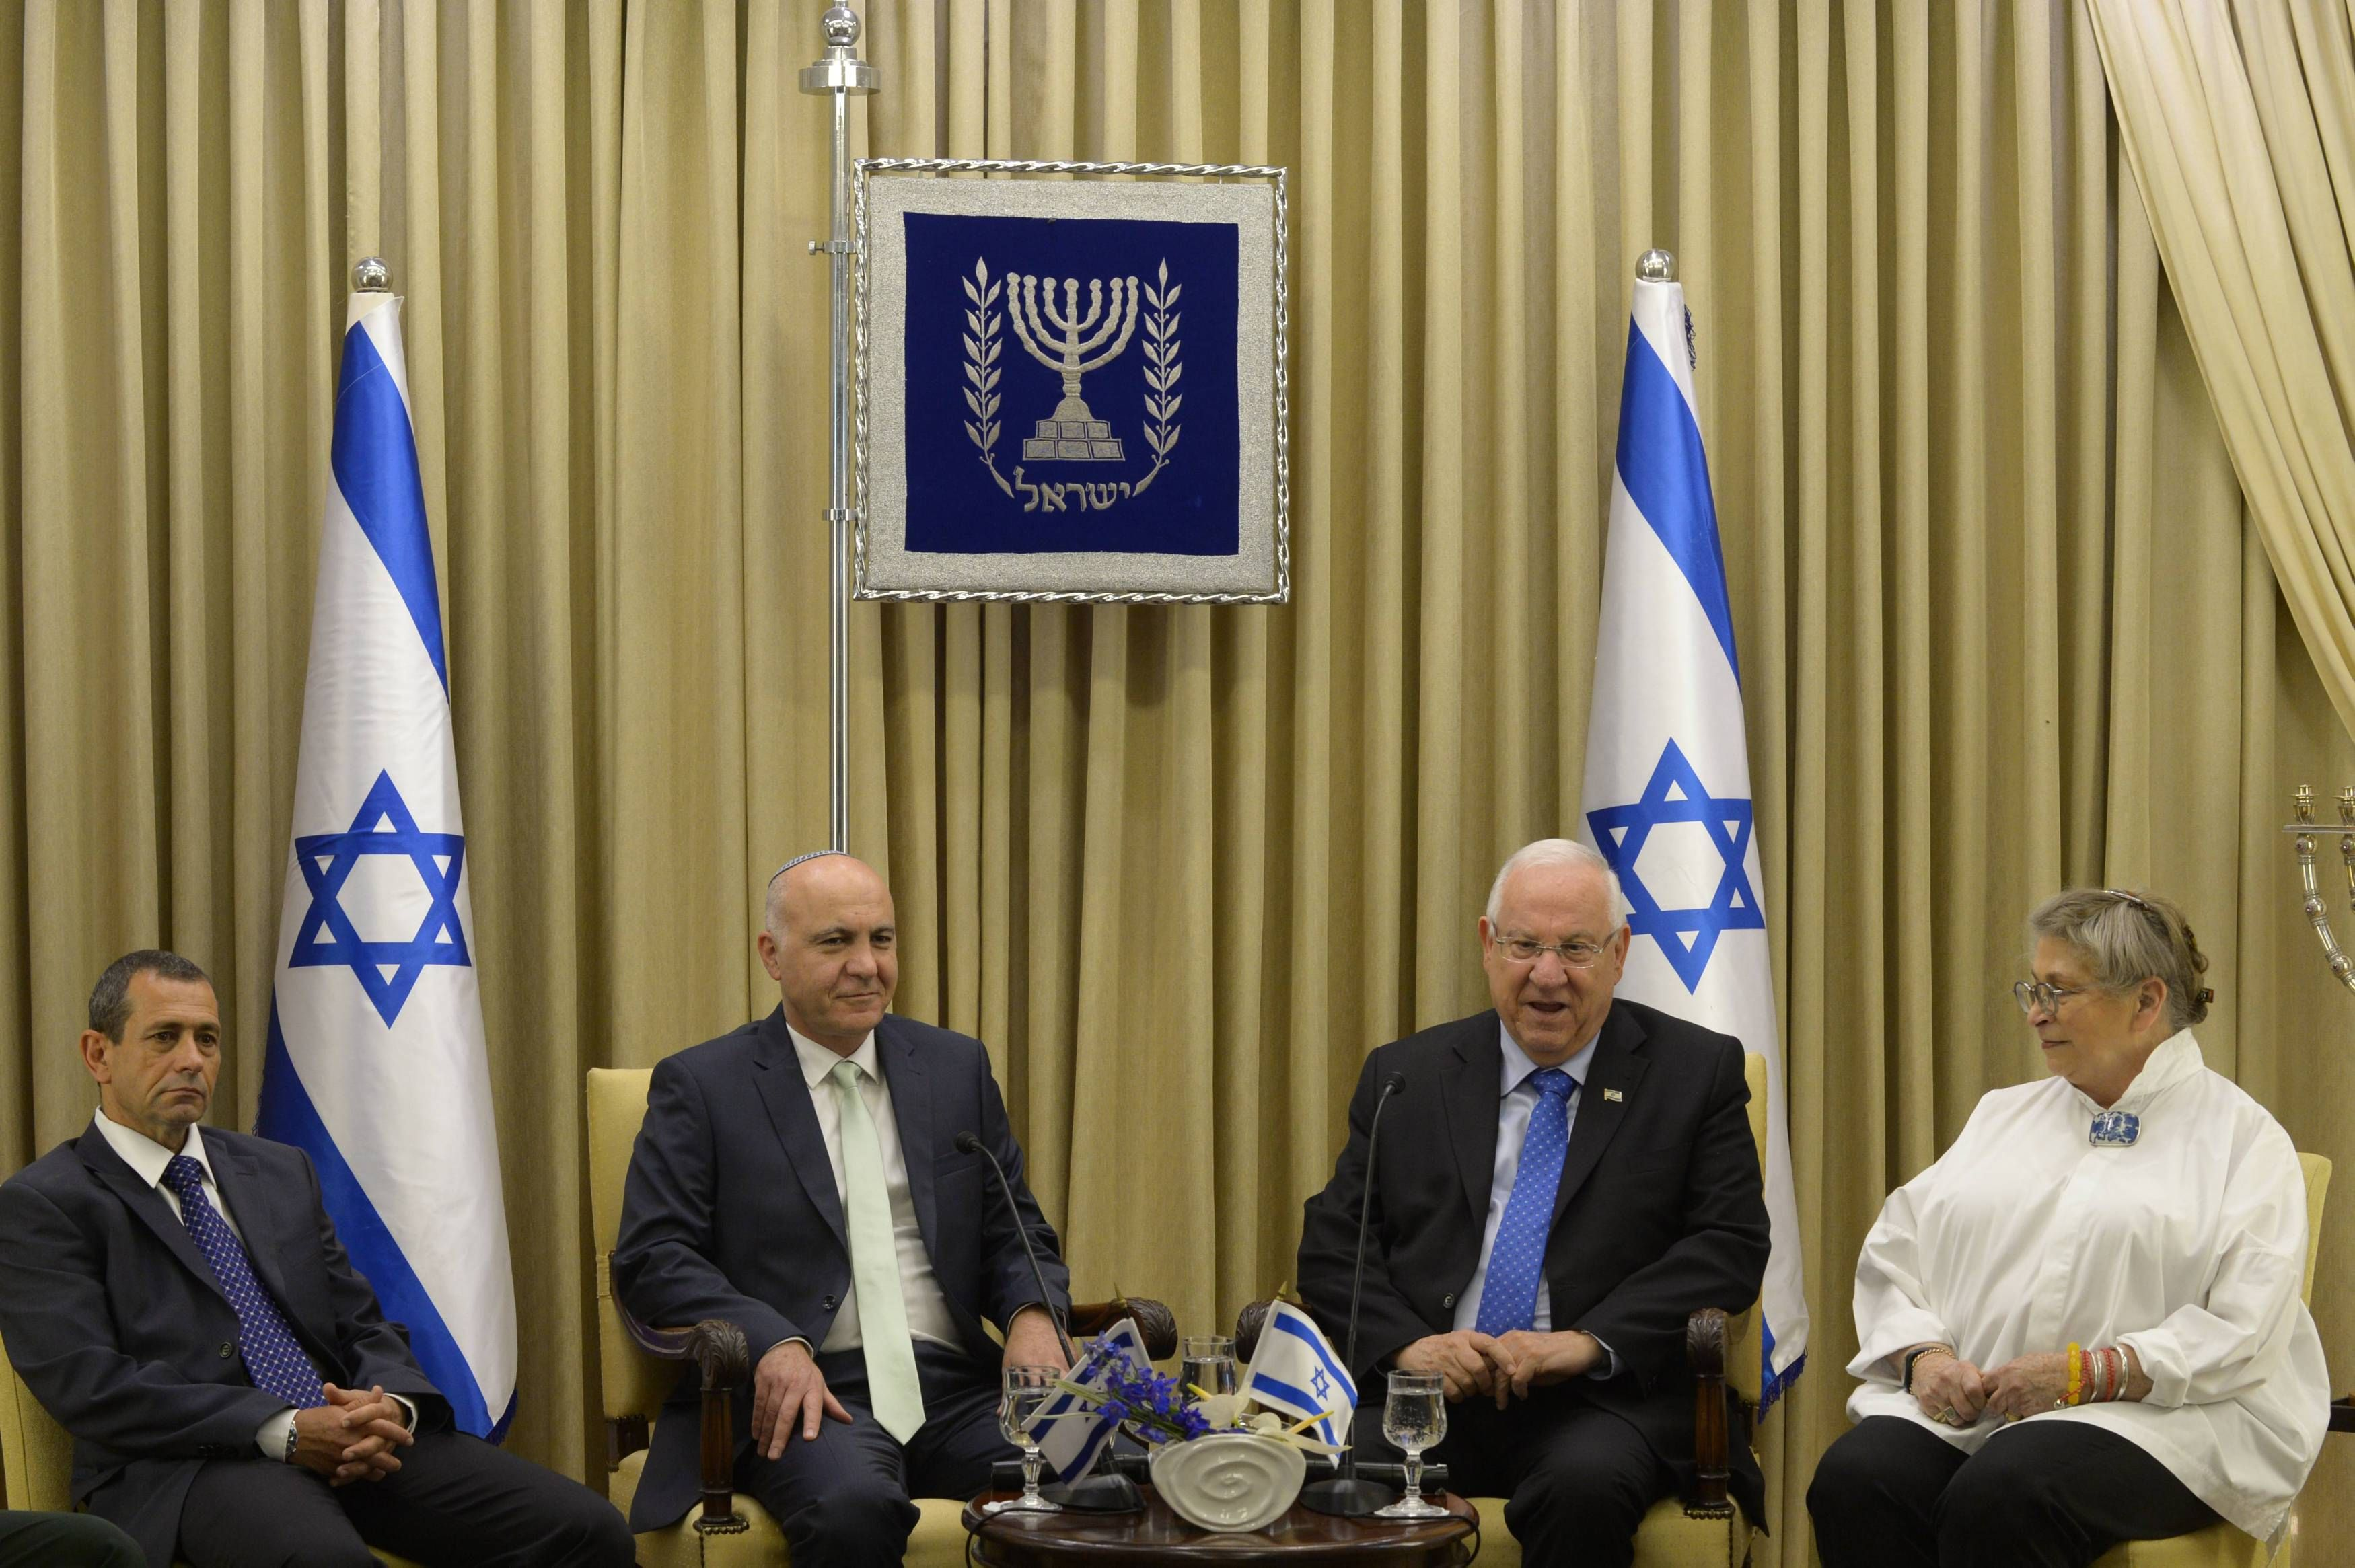 Head of Israeli internal security visited Amman today to resolve embassy standof